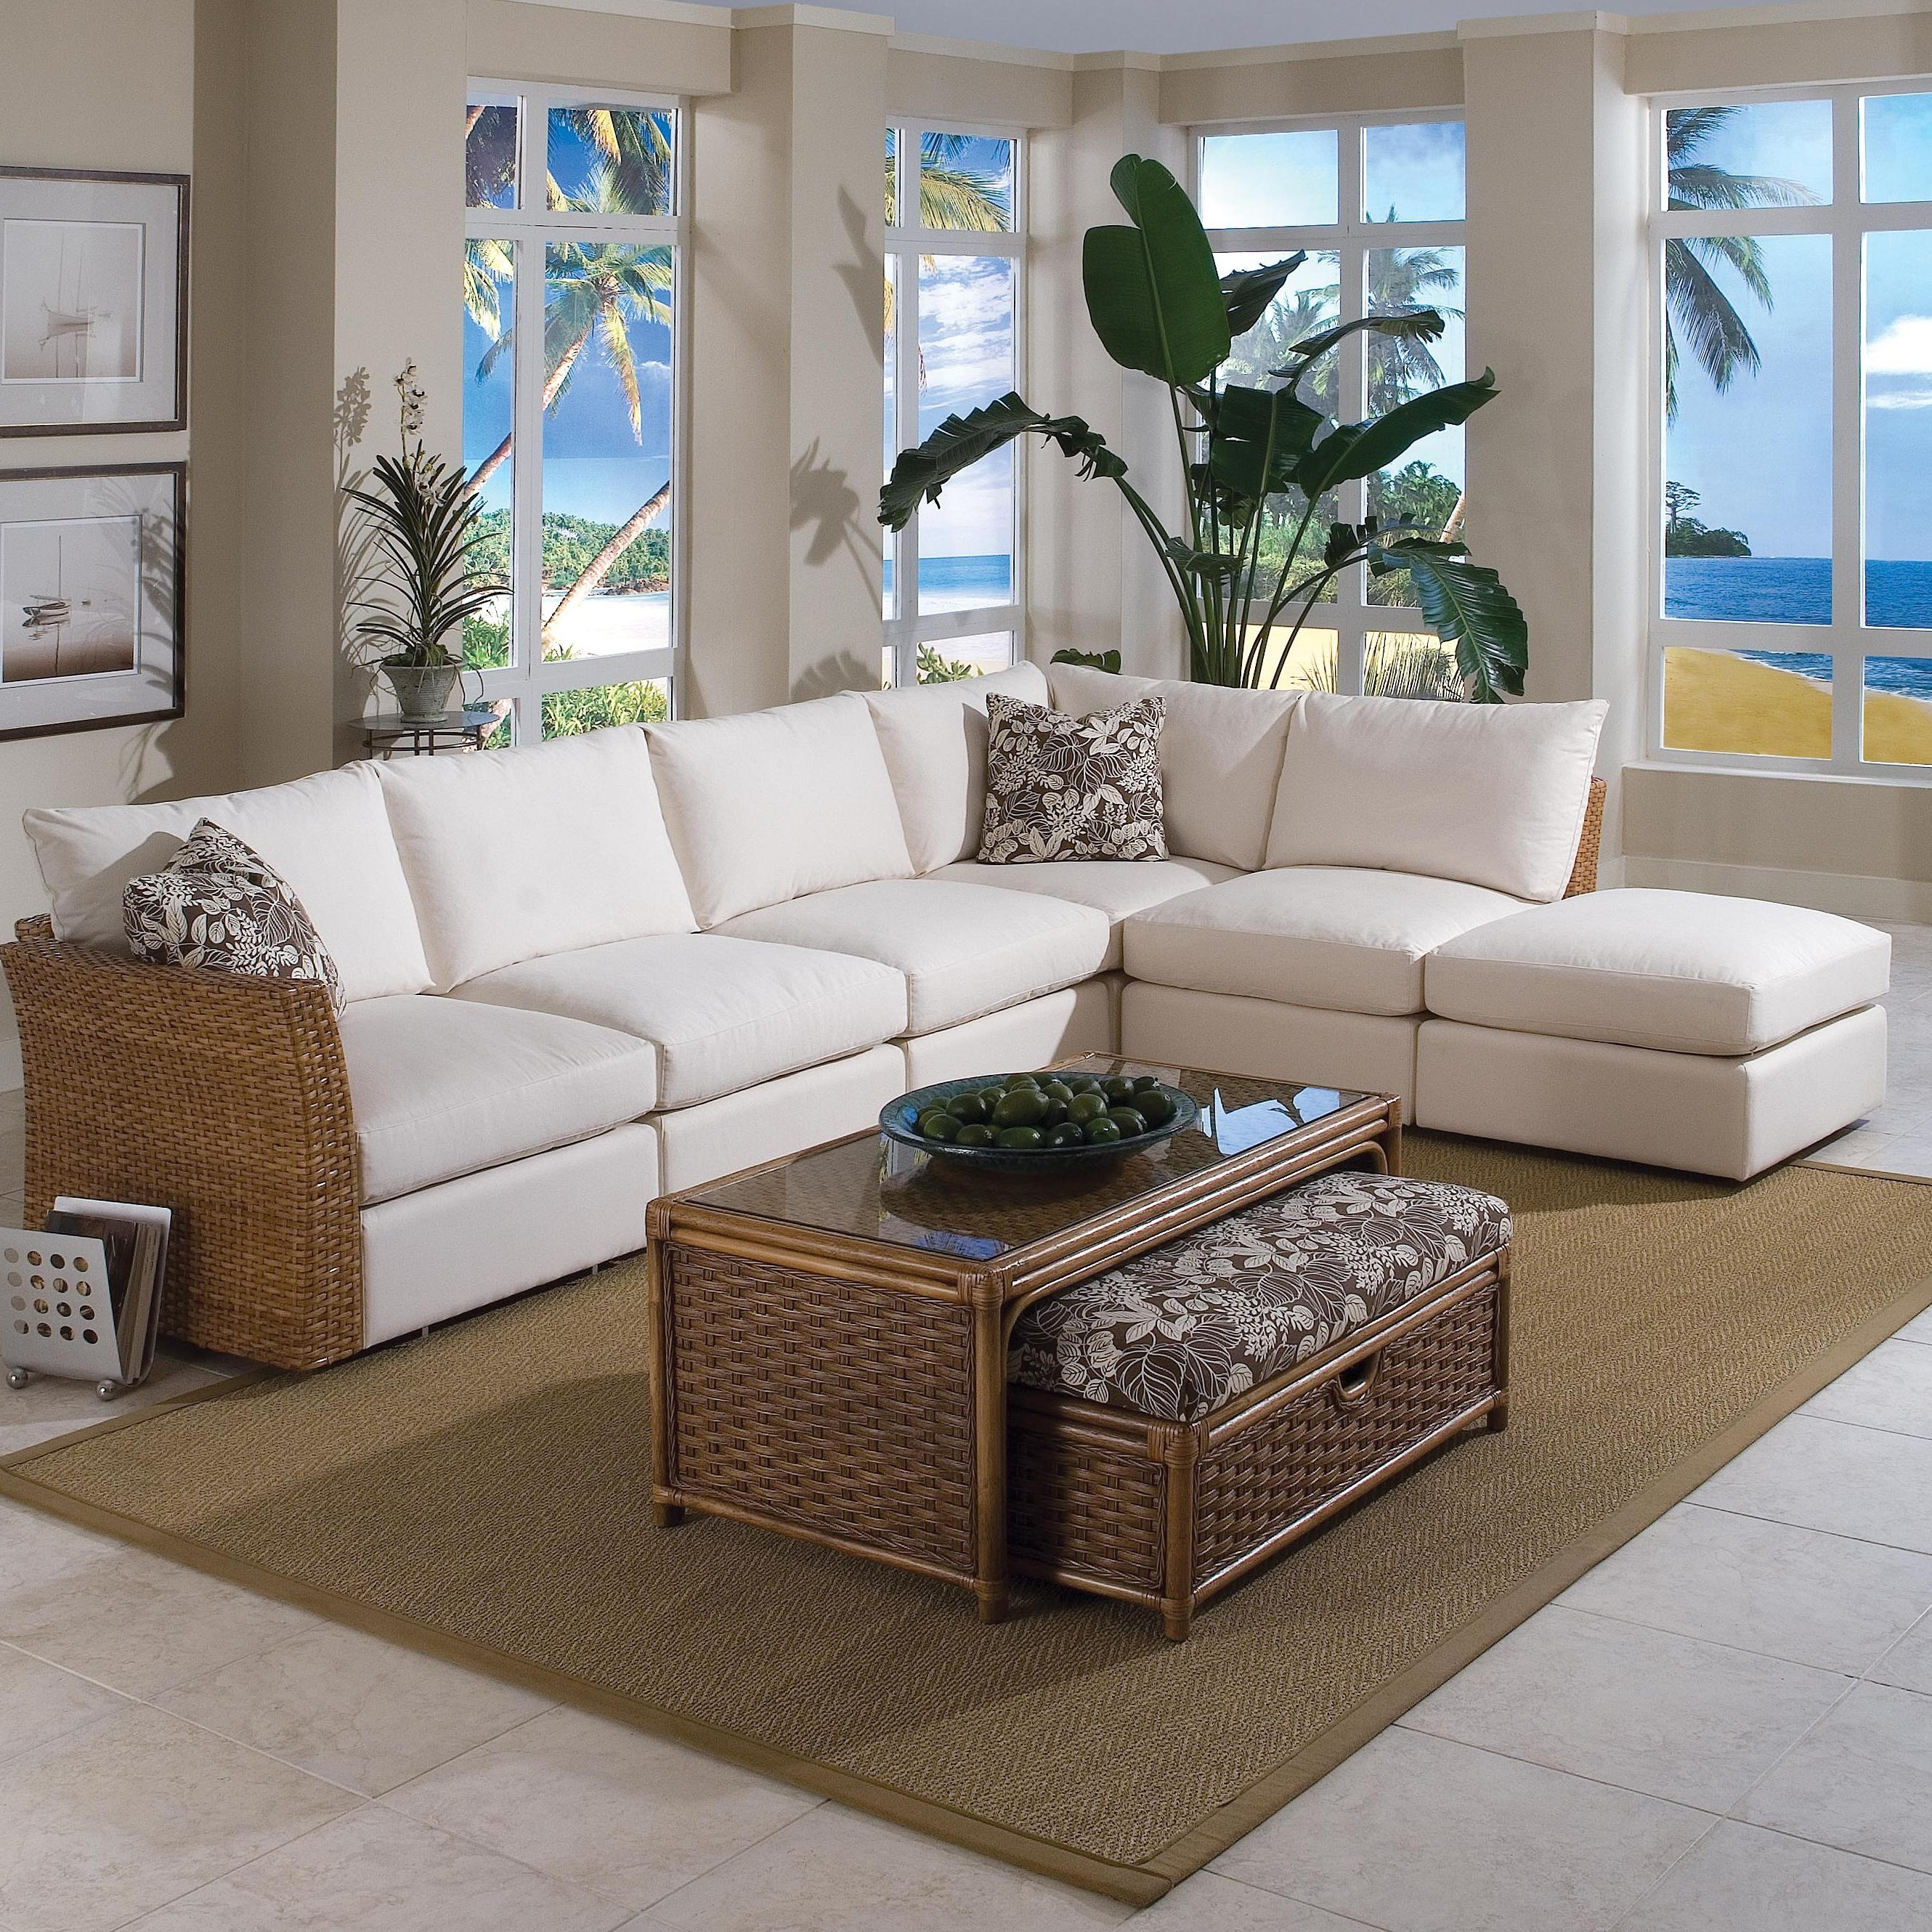 2018 Havertys Sectional Sofas Regarding Braxton Culler Grand Water Point Tropical Sectional Sofa With Two (View 9 of 15)